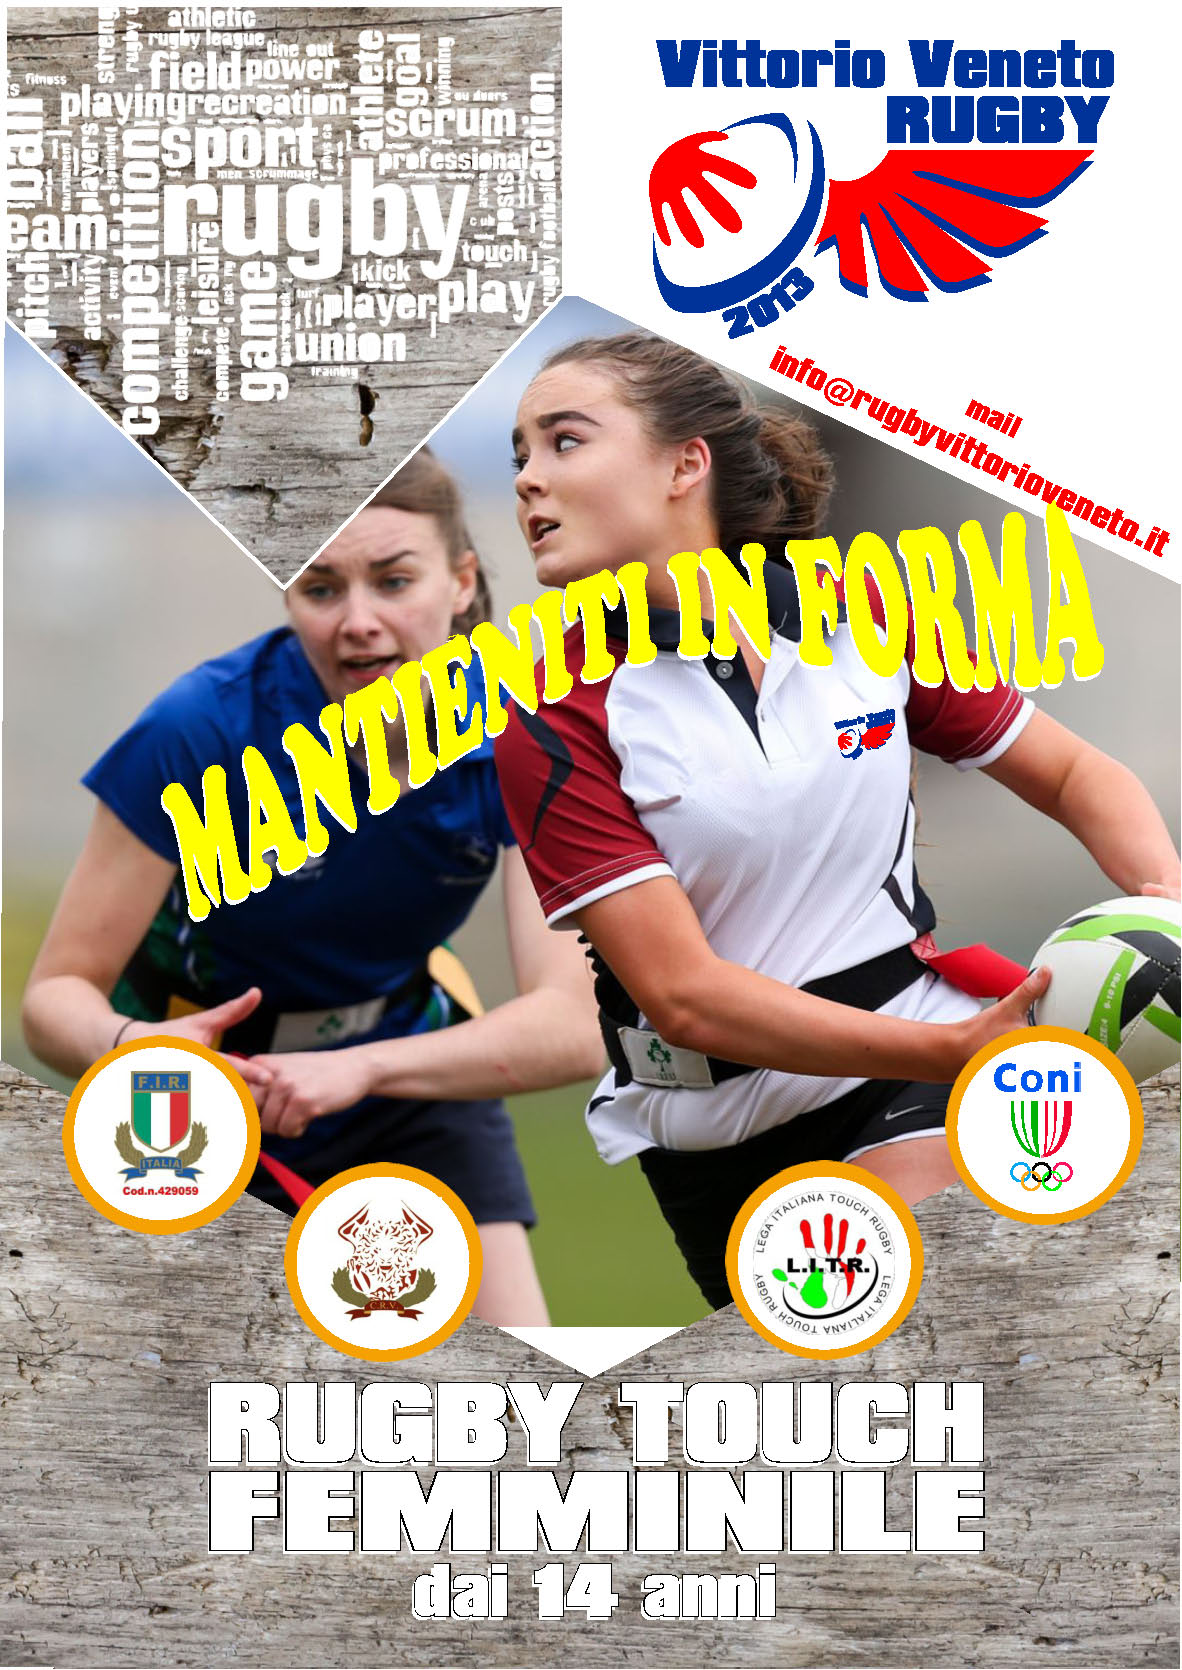 https://rugbyvittorioveneto.it/wp-content/uploads/2019/08/BROCHURE-volantino-touch-femmine.jpg